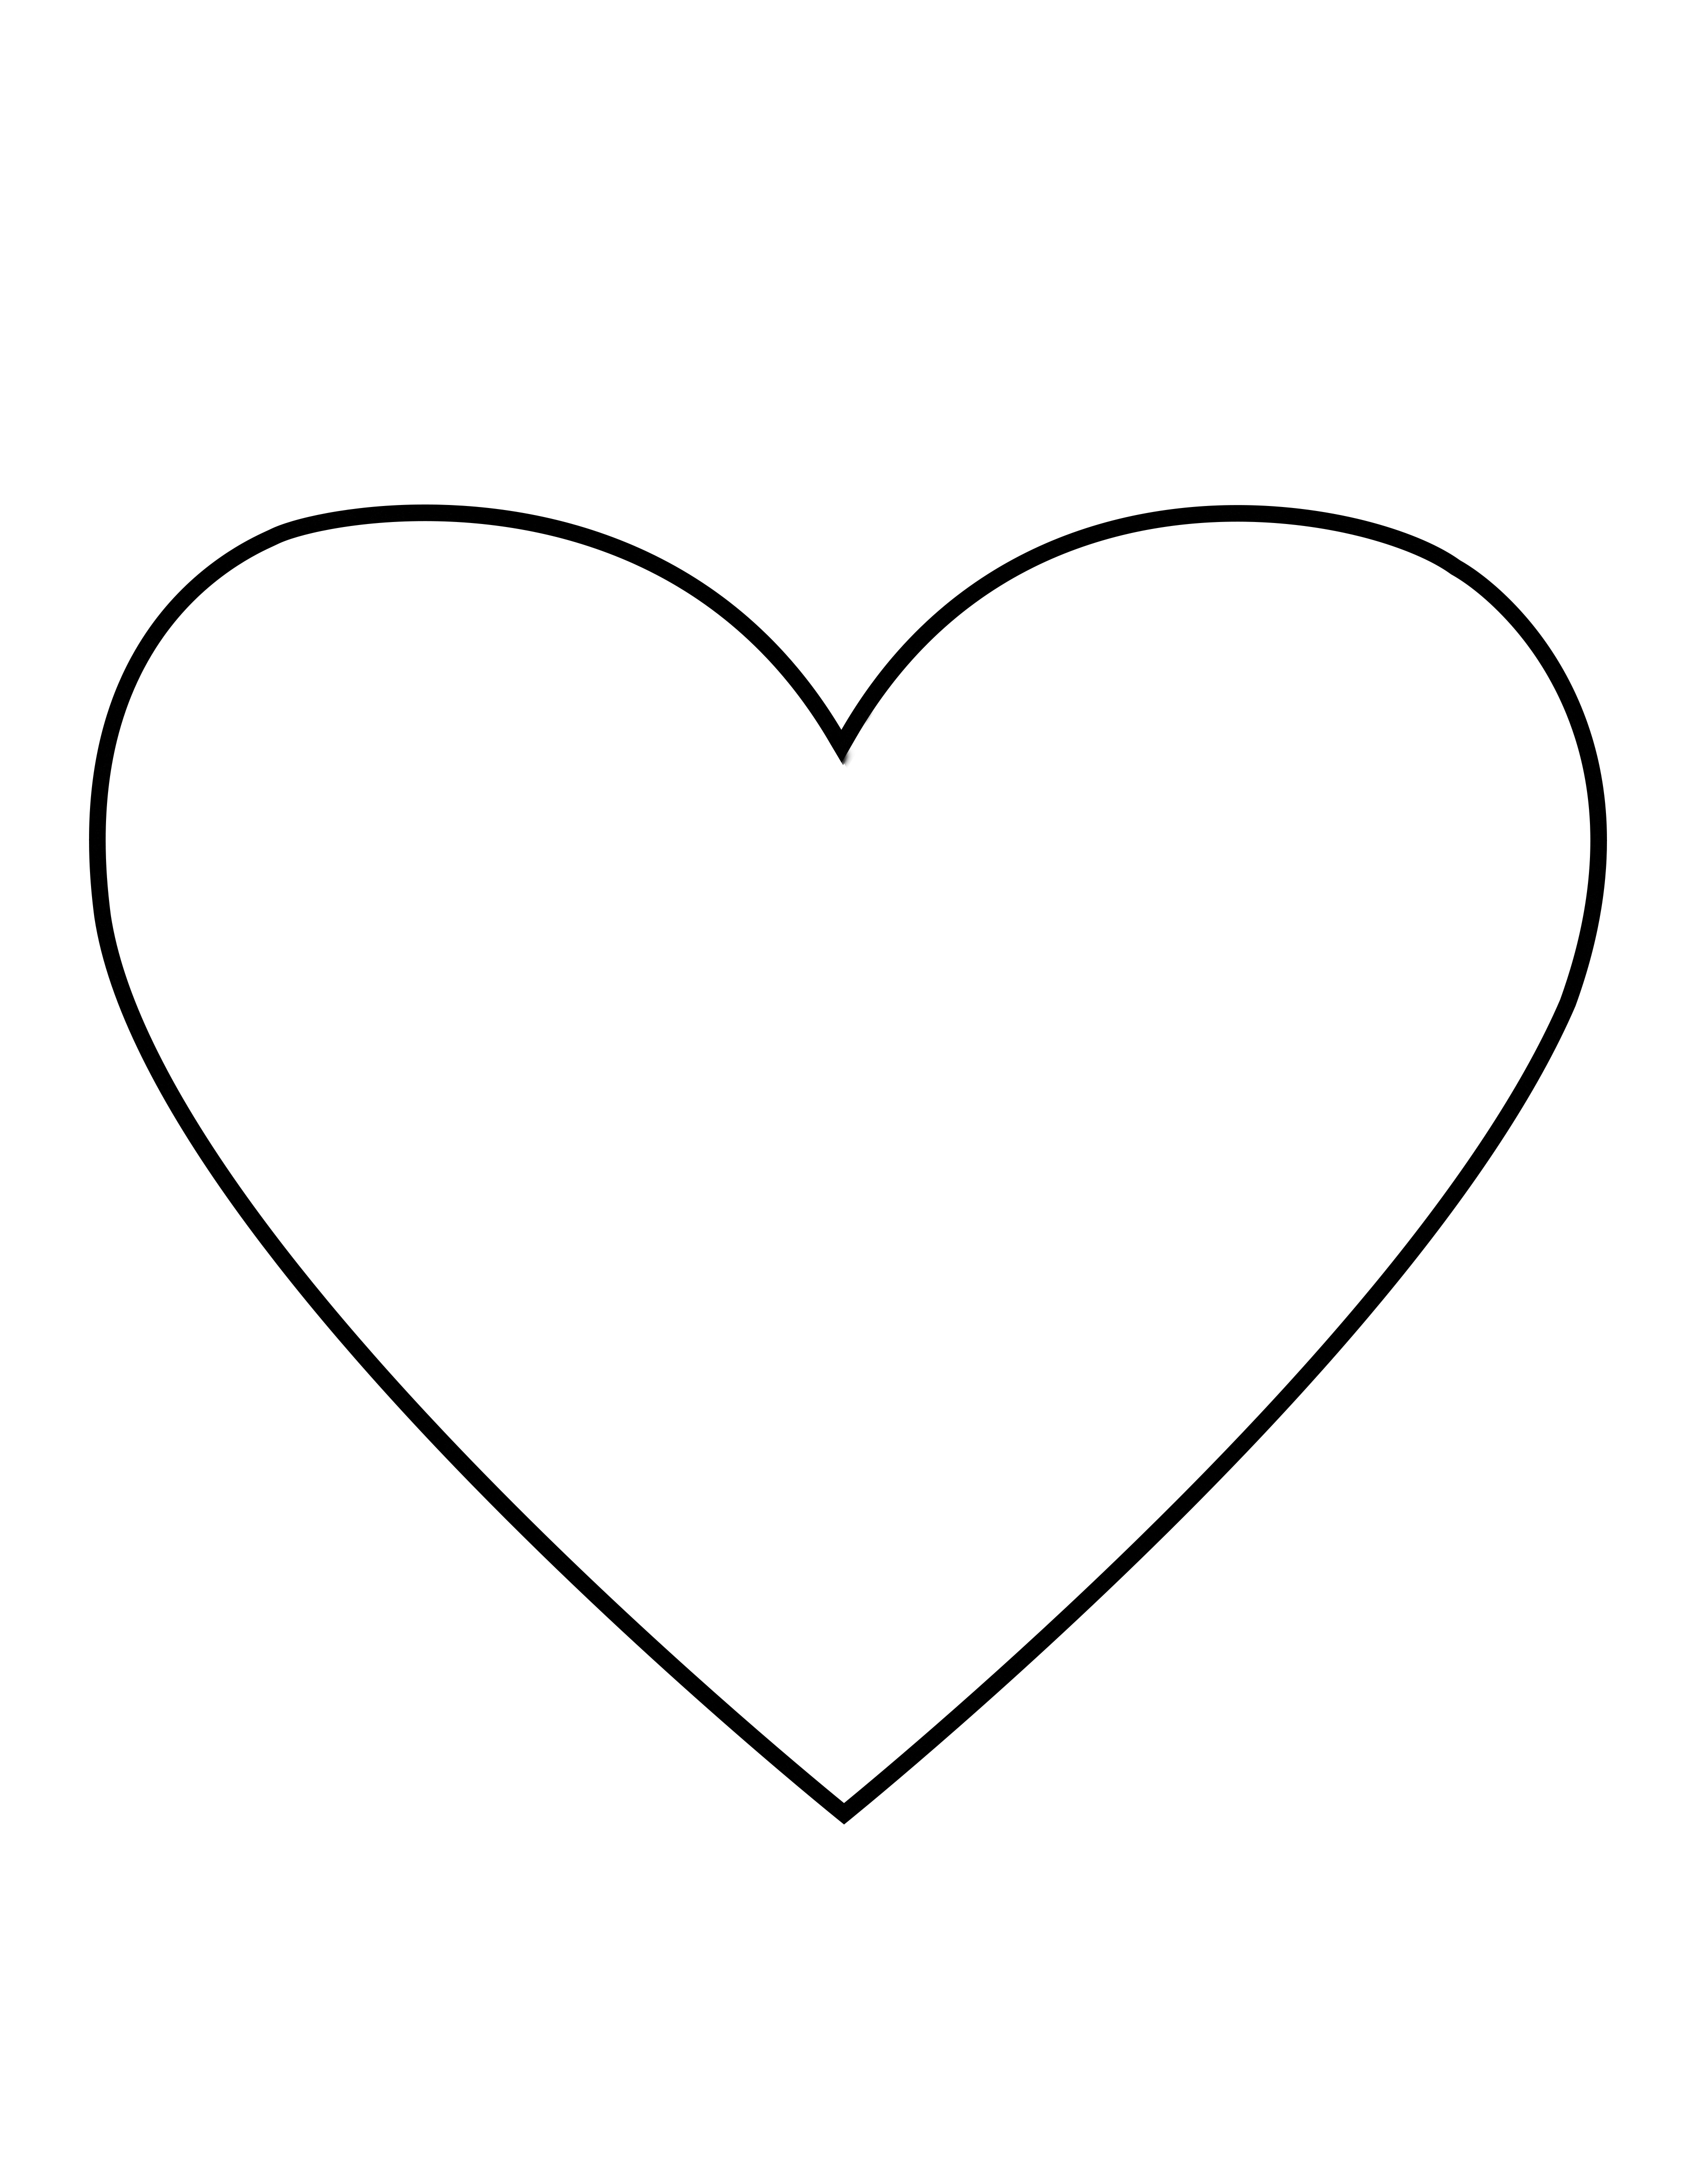 A line drawing of a heart from the nursery manual Behold Your Little Ones (2008), page 31.